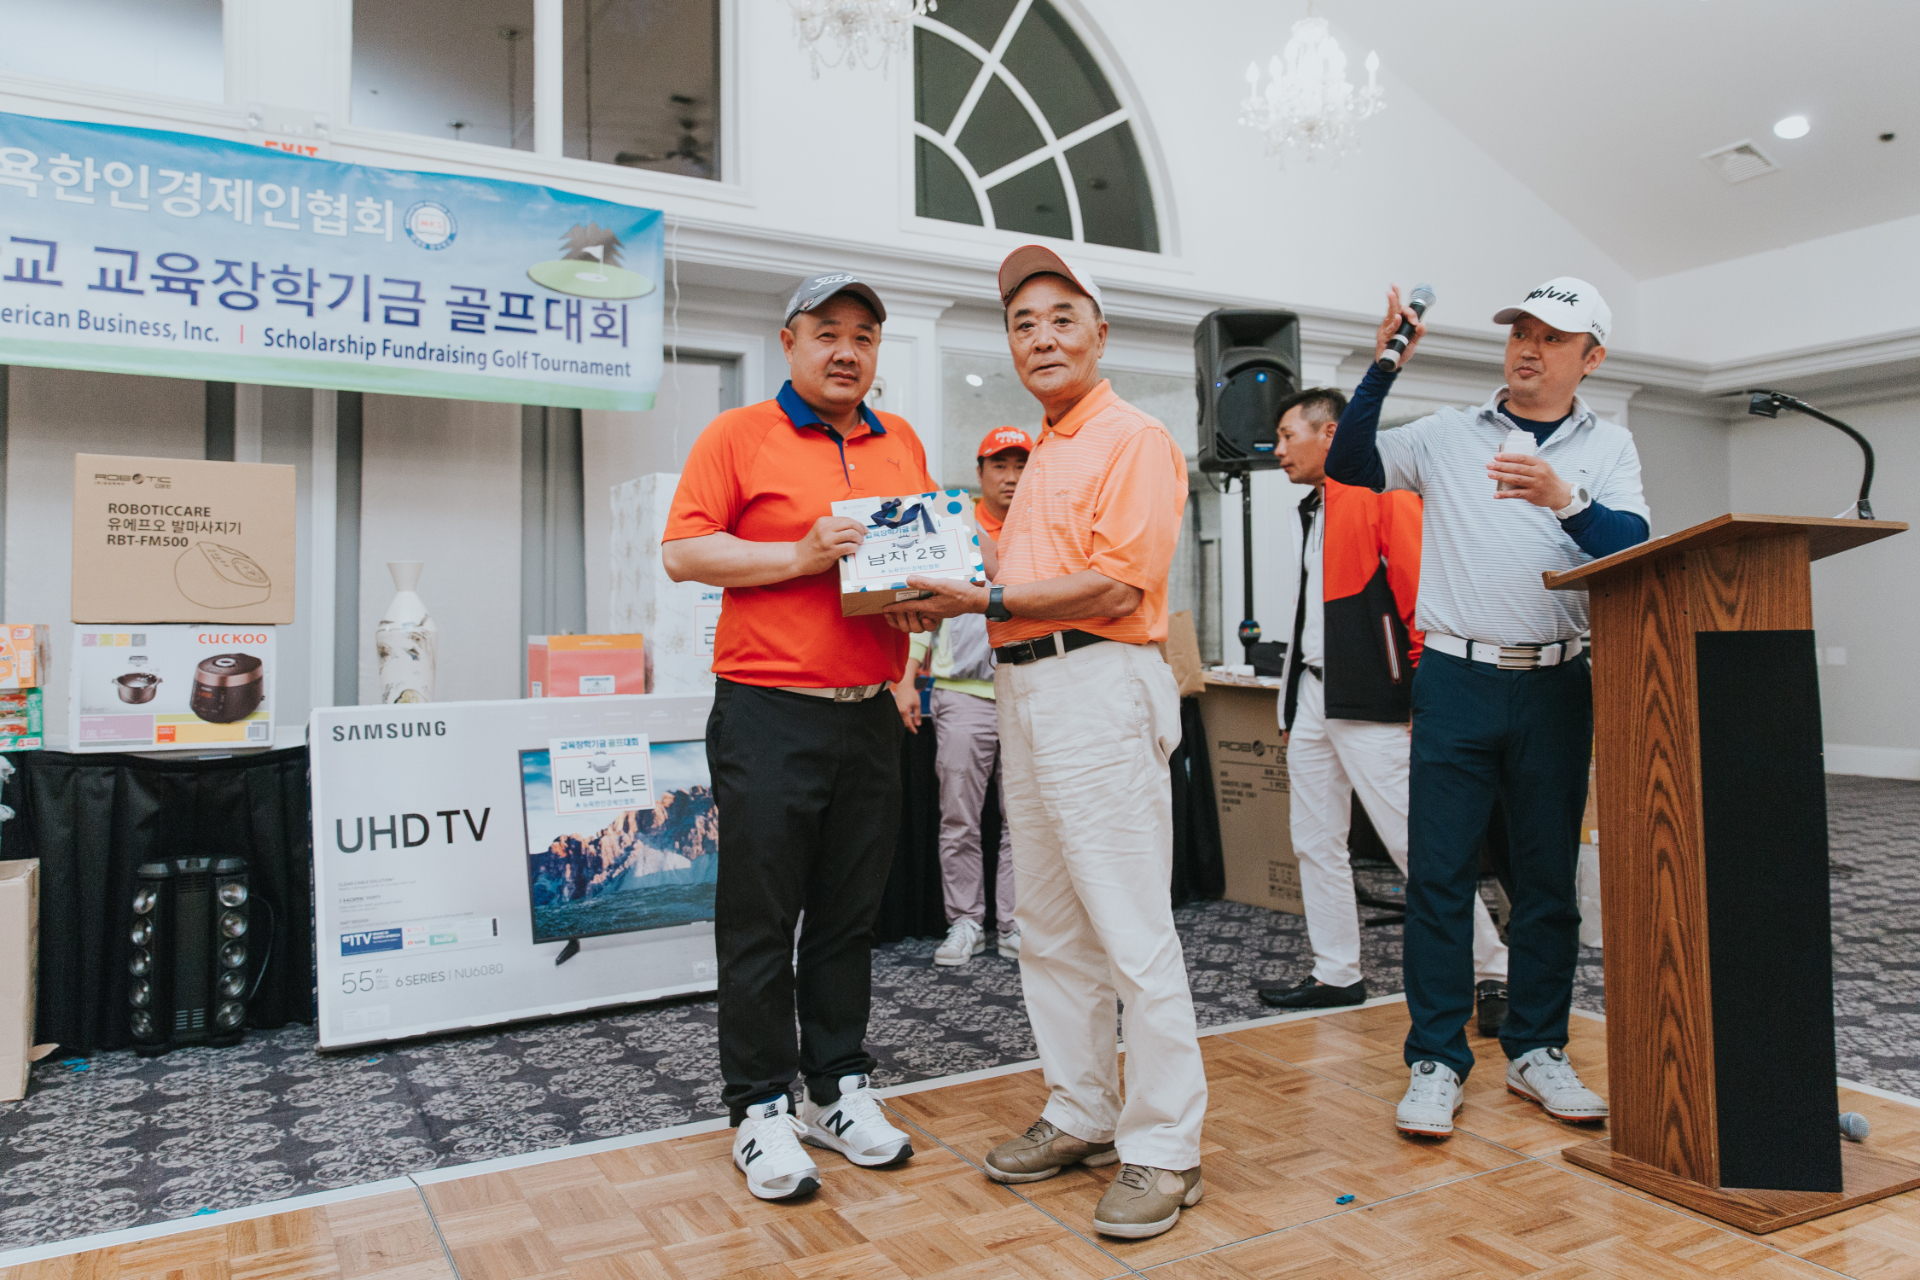 https://nykbi.com/new/wp-content/uploads/2019/07/190619-Scholarship-Fundraising-Golf-Tournament-051.jpg